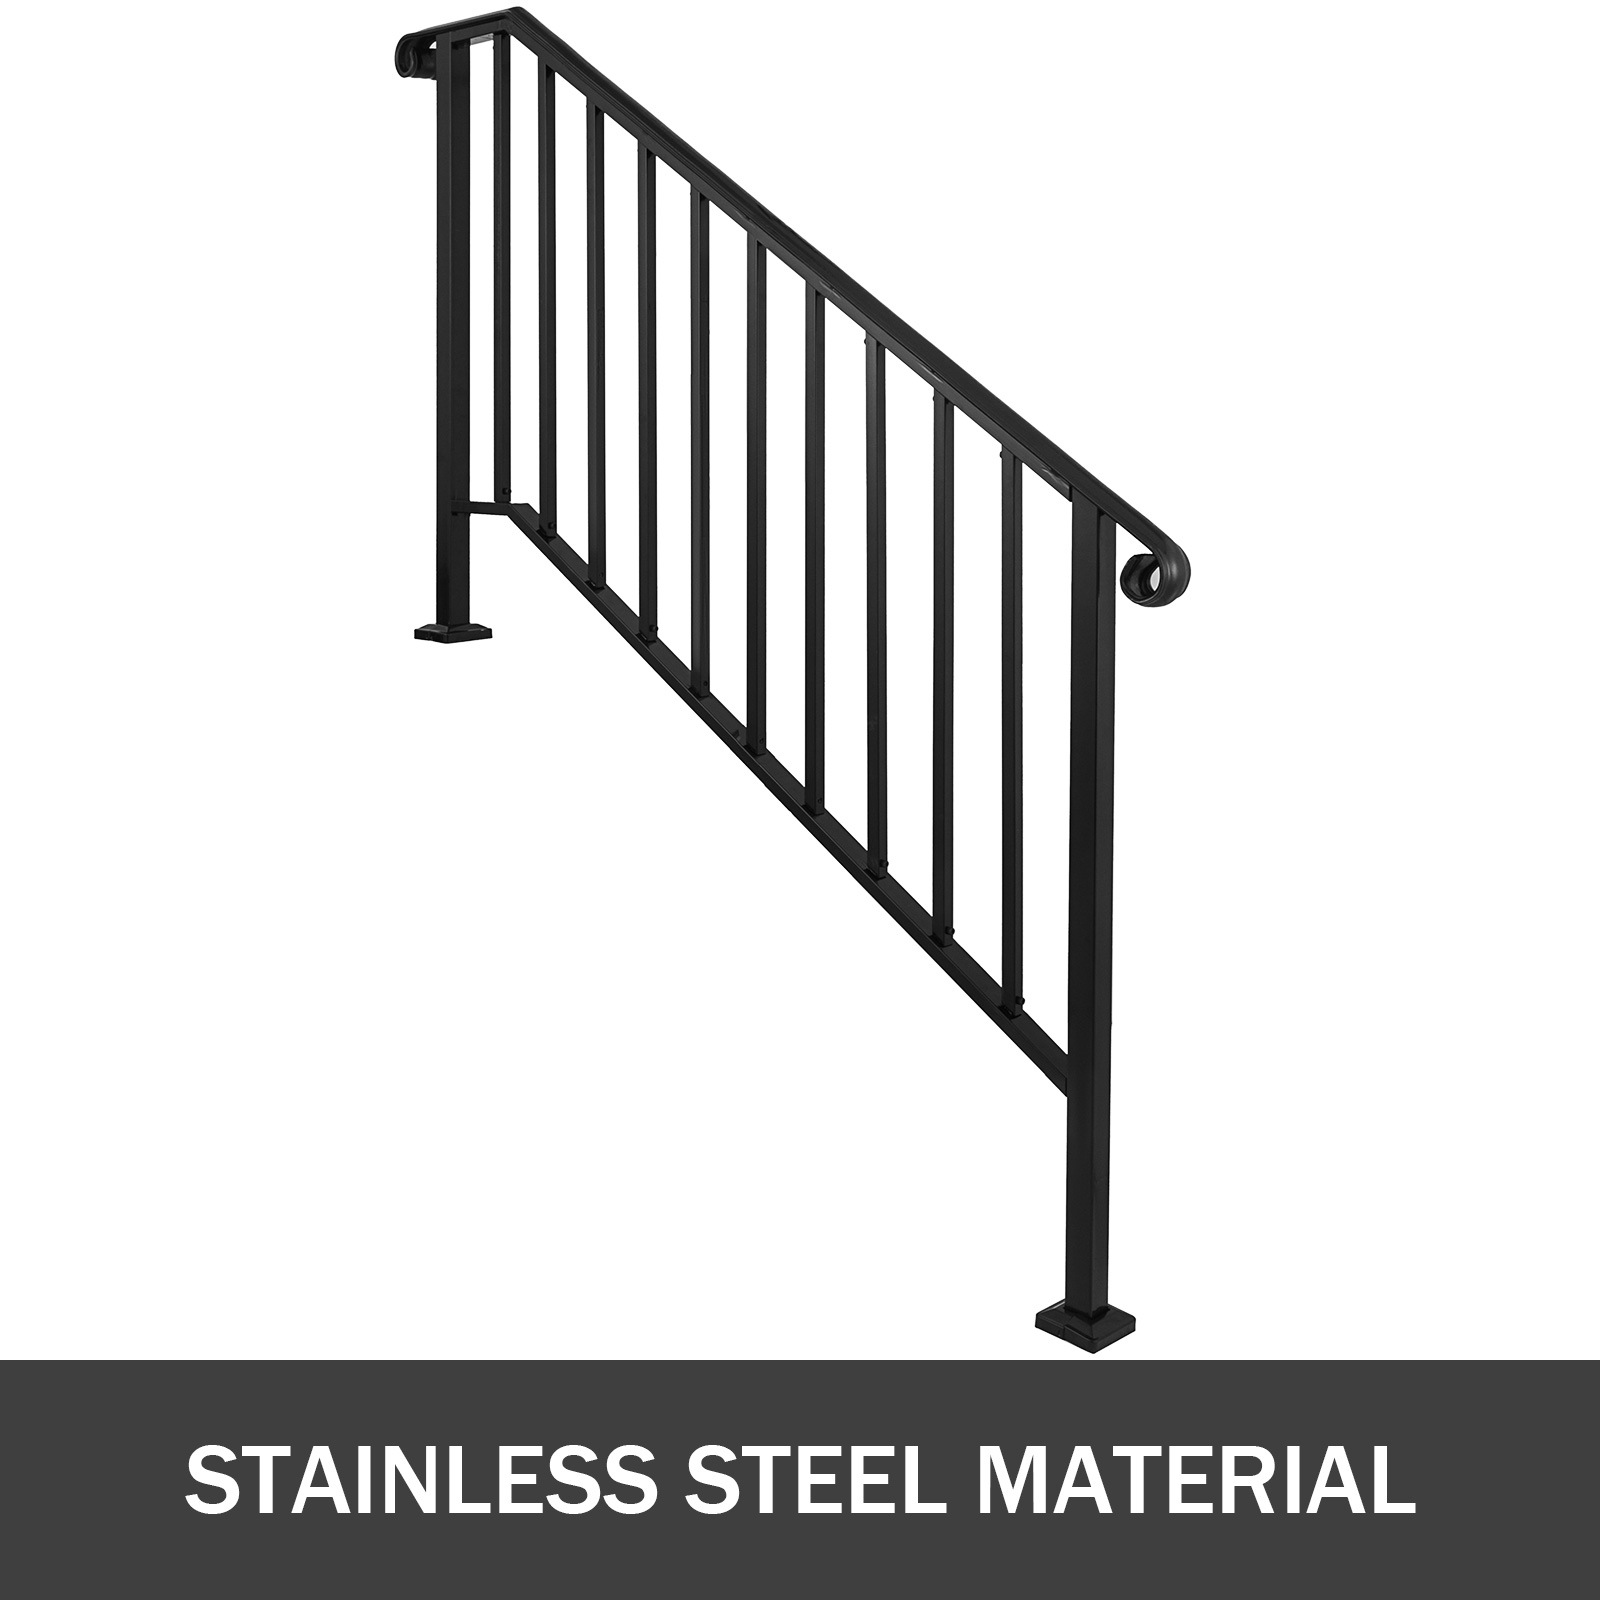 50 Outdoor Metal Stair Railing Kits You Ll Love In 2020 Visual Hunt | Metal Handrails For Stairs Exterior | Outdoor Stair | Simplified Building | Porch | Deck Railing | Handrail Ideas